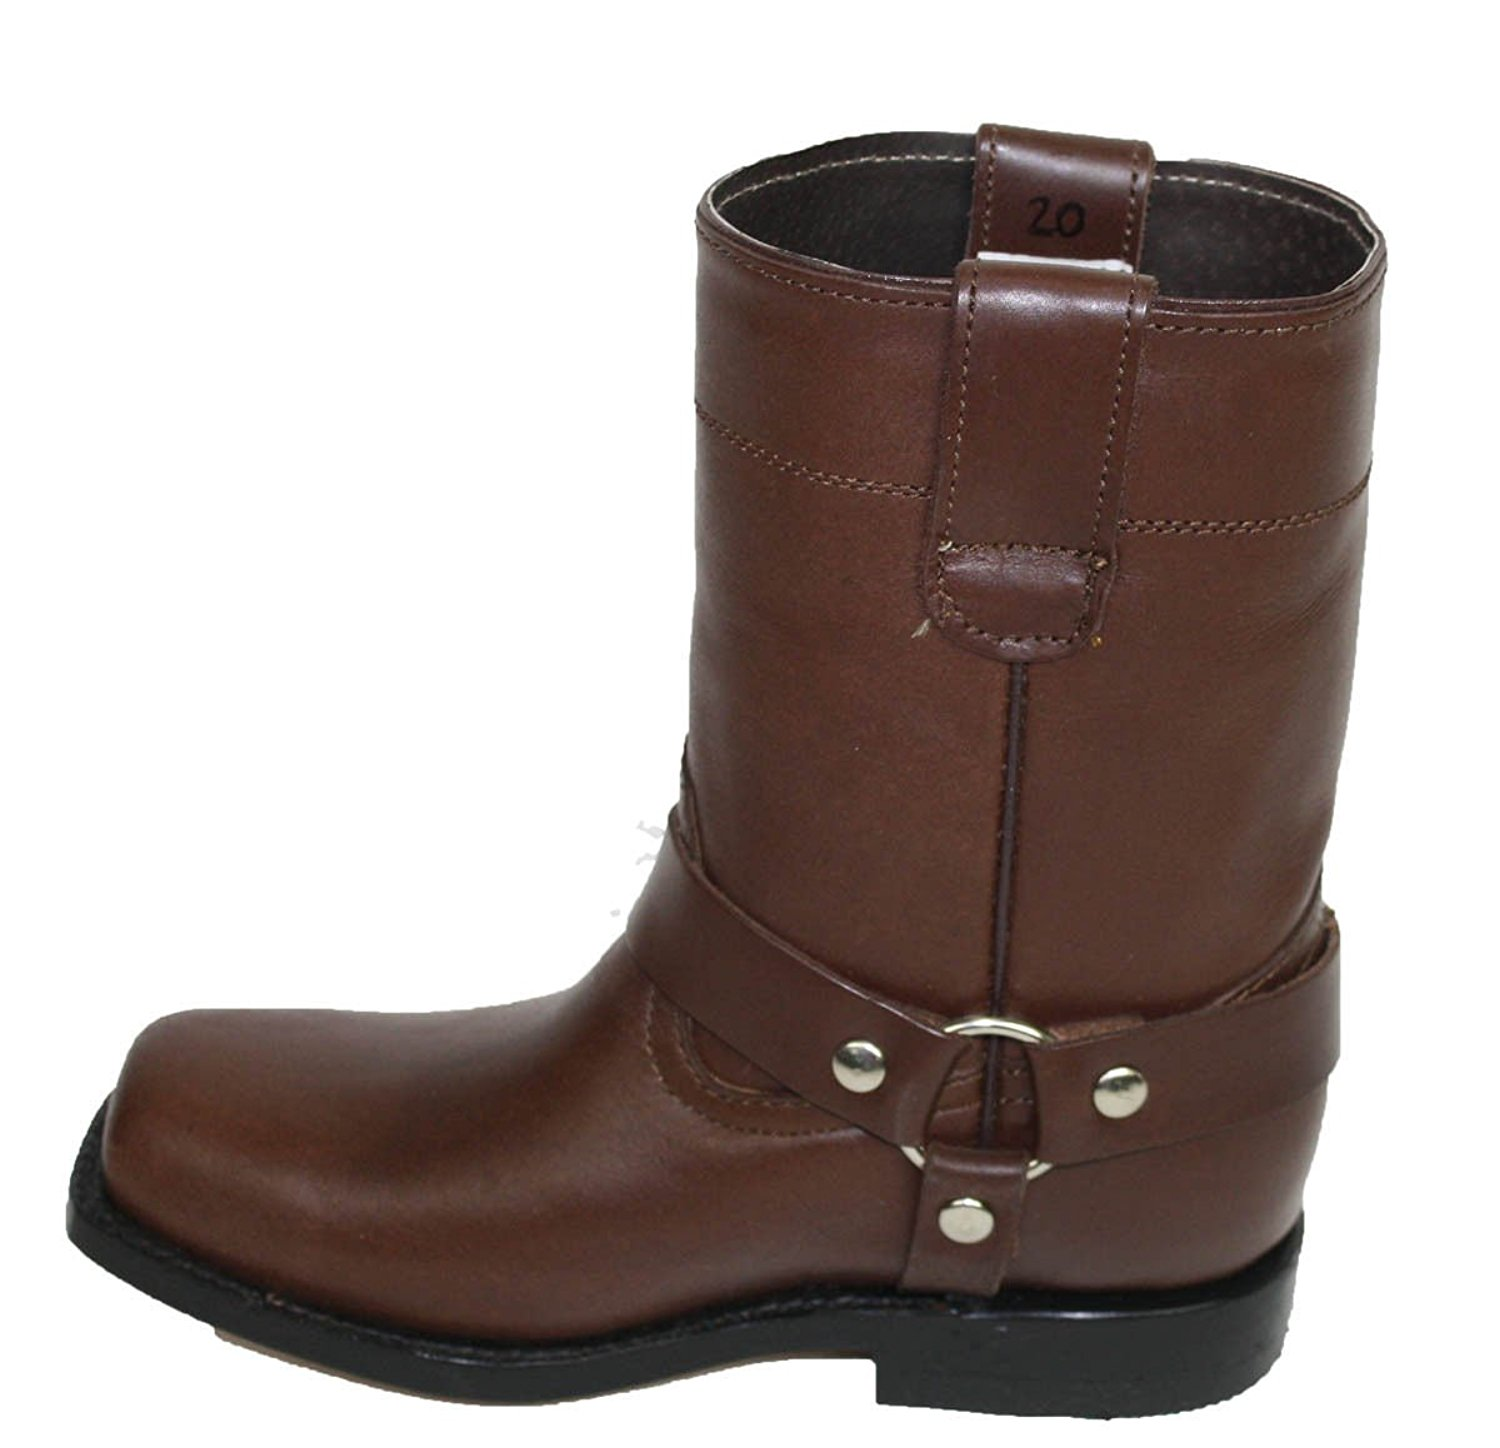 Dona Michi Unisex Kids Genuine Soft Cow Hide Brown Leather Motorcycle Harness Boots